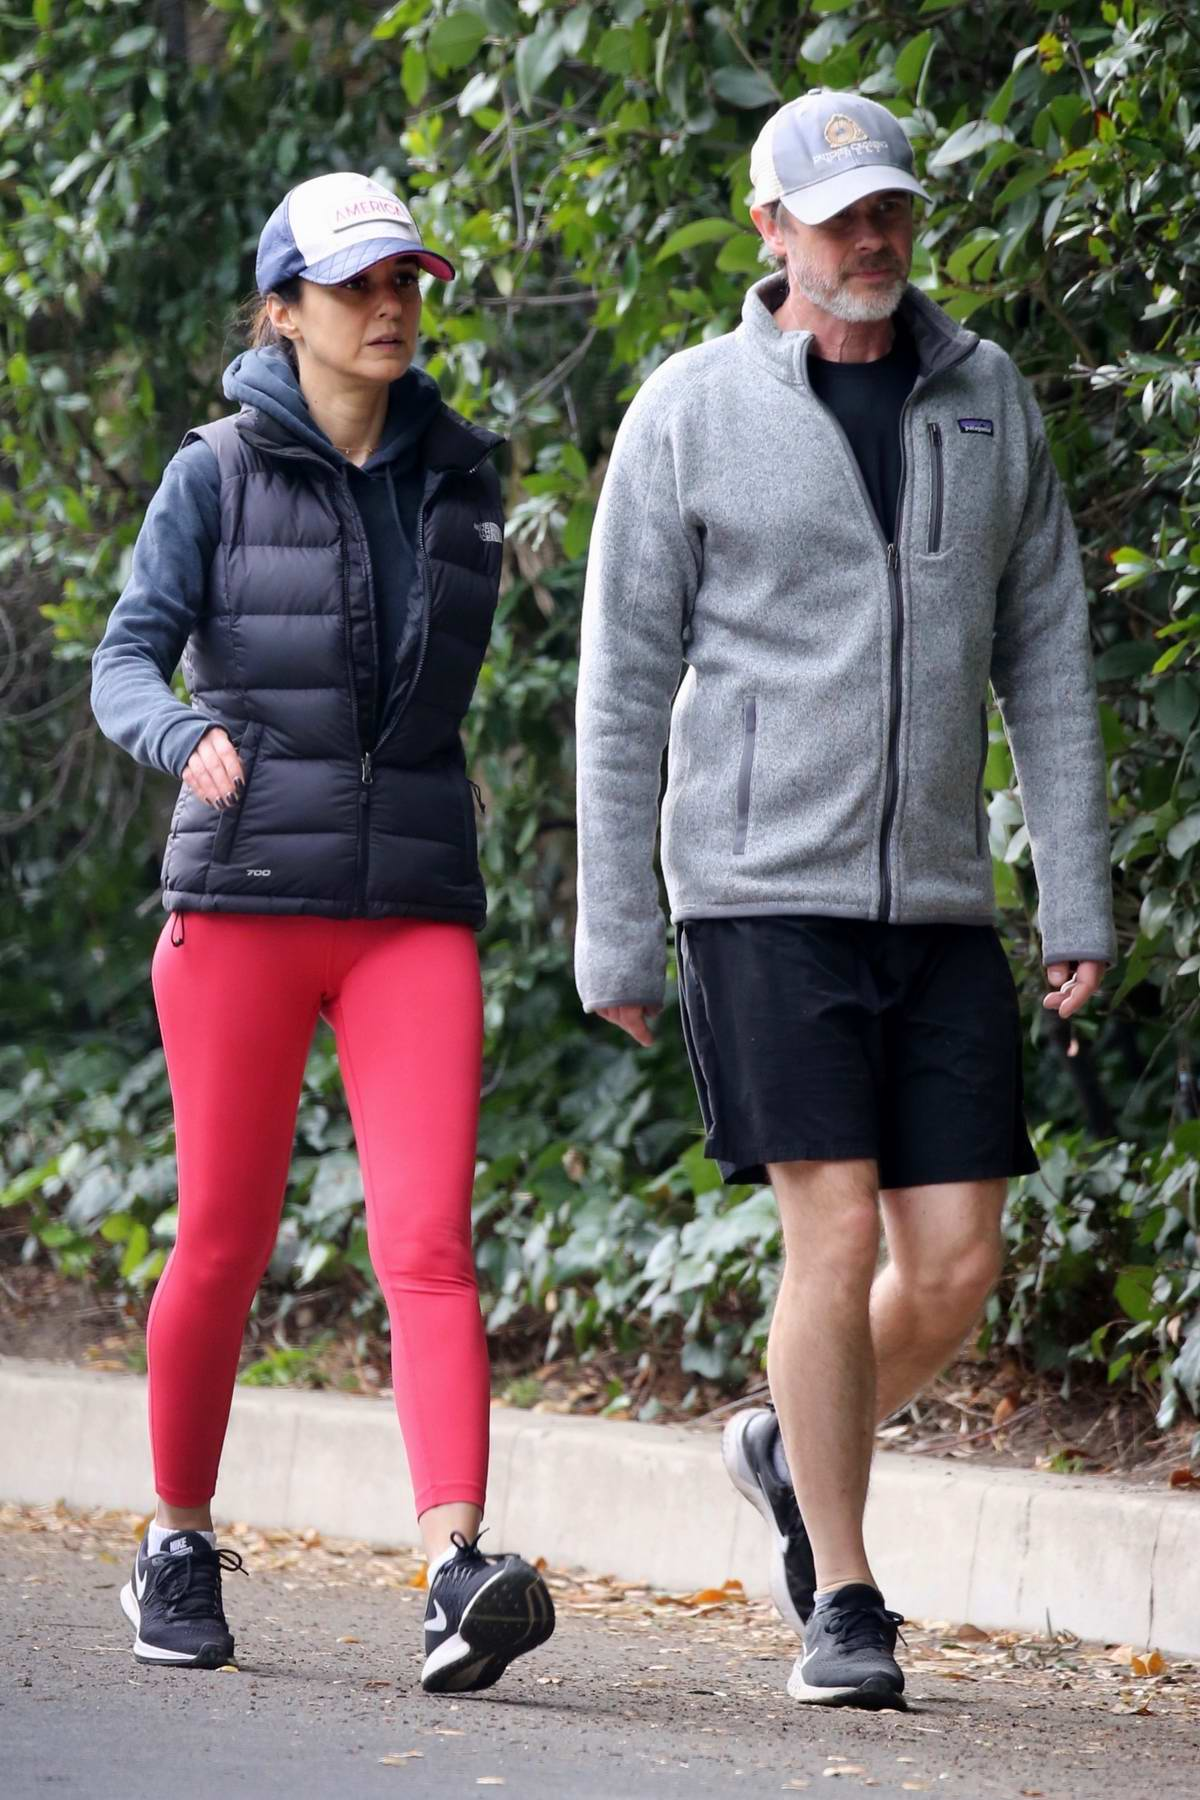 Emmanuelle Chriqui steps out for a hike with Sam Trammell in Hollywood, California